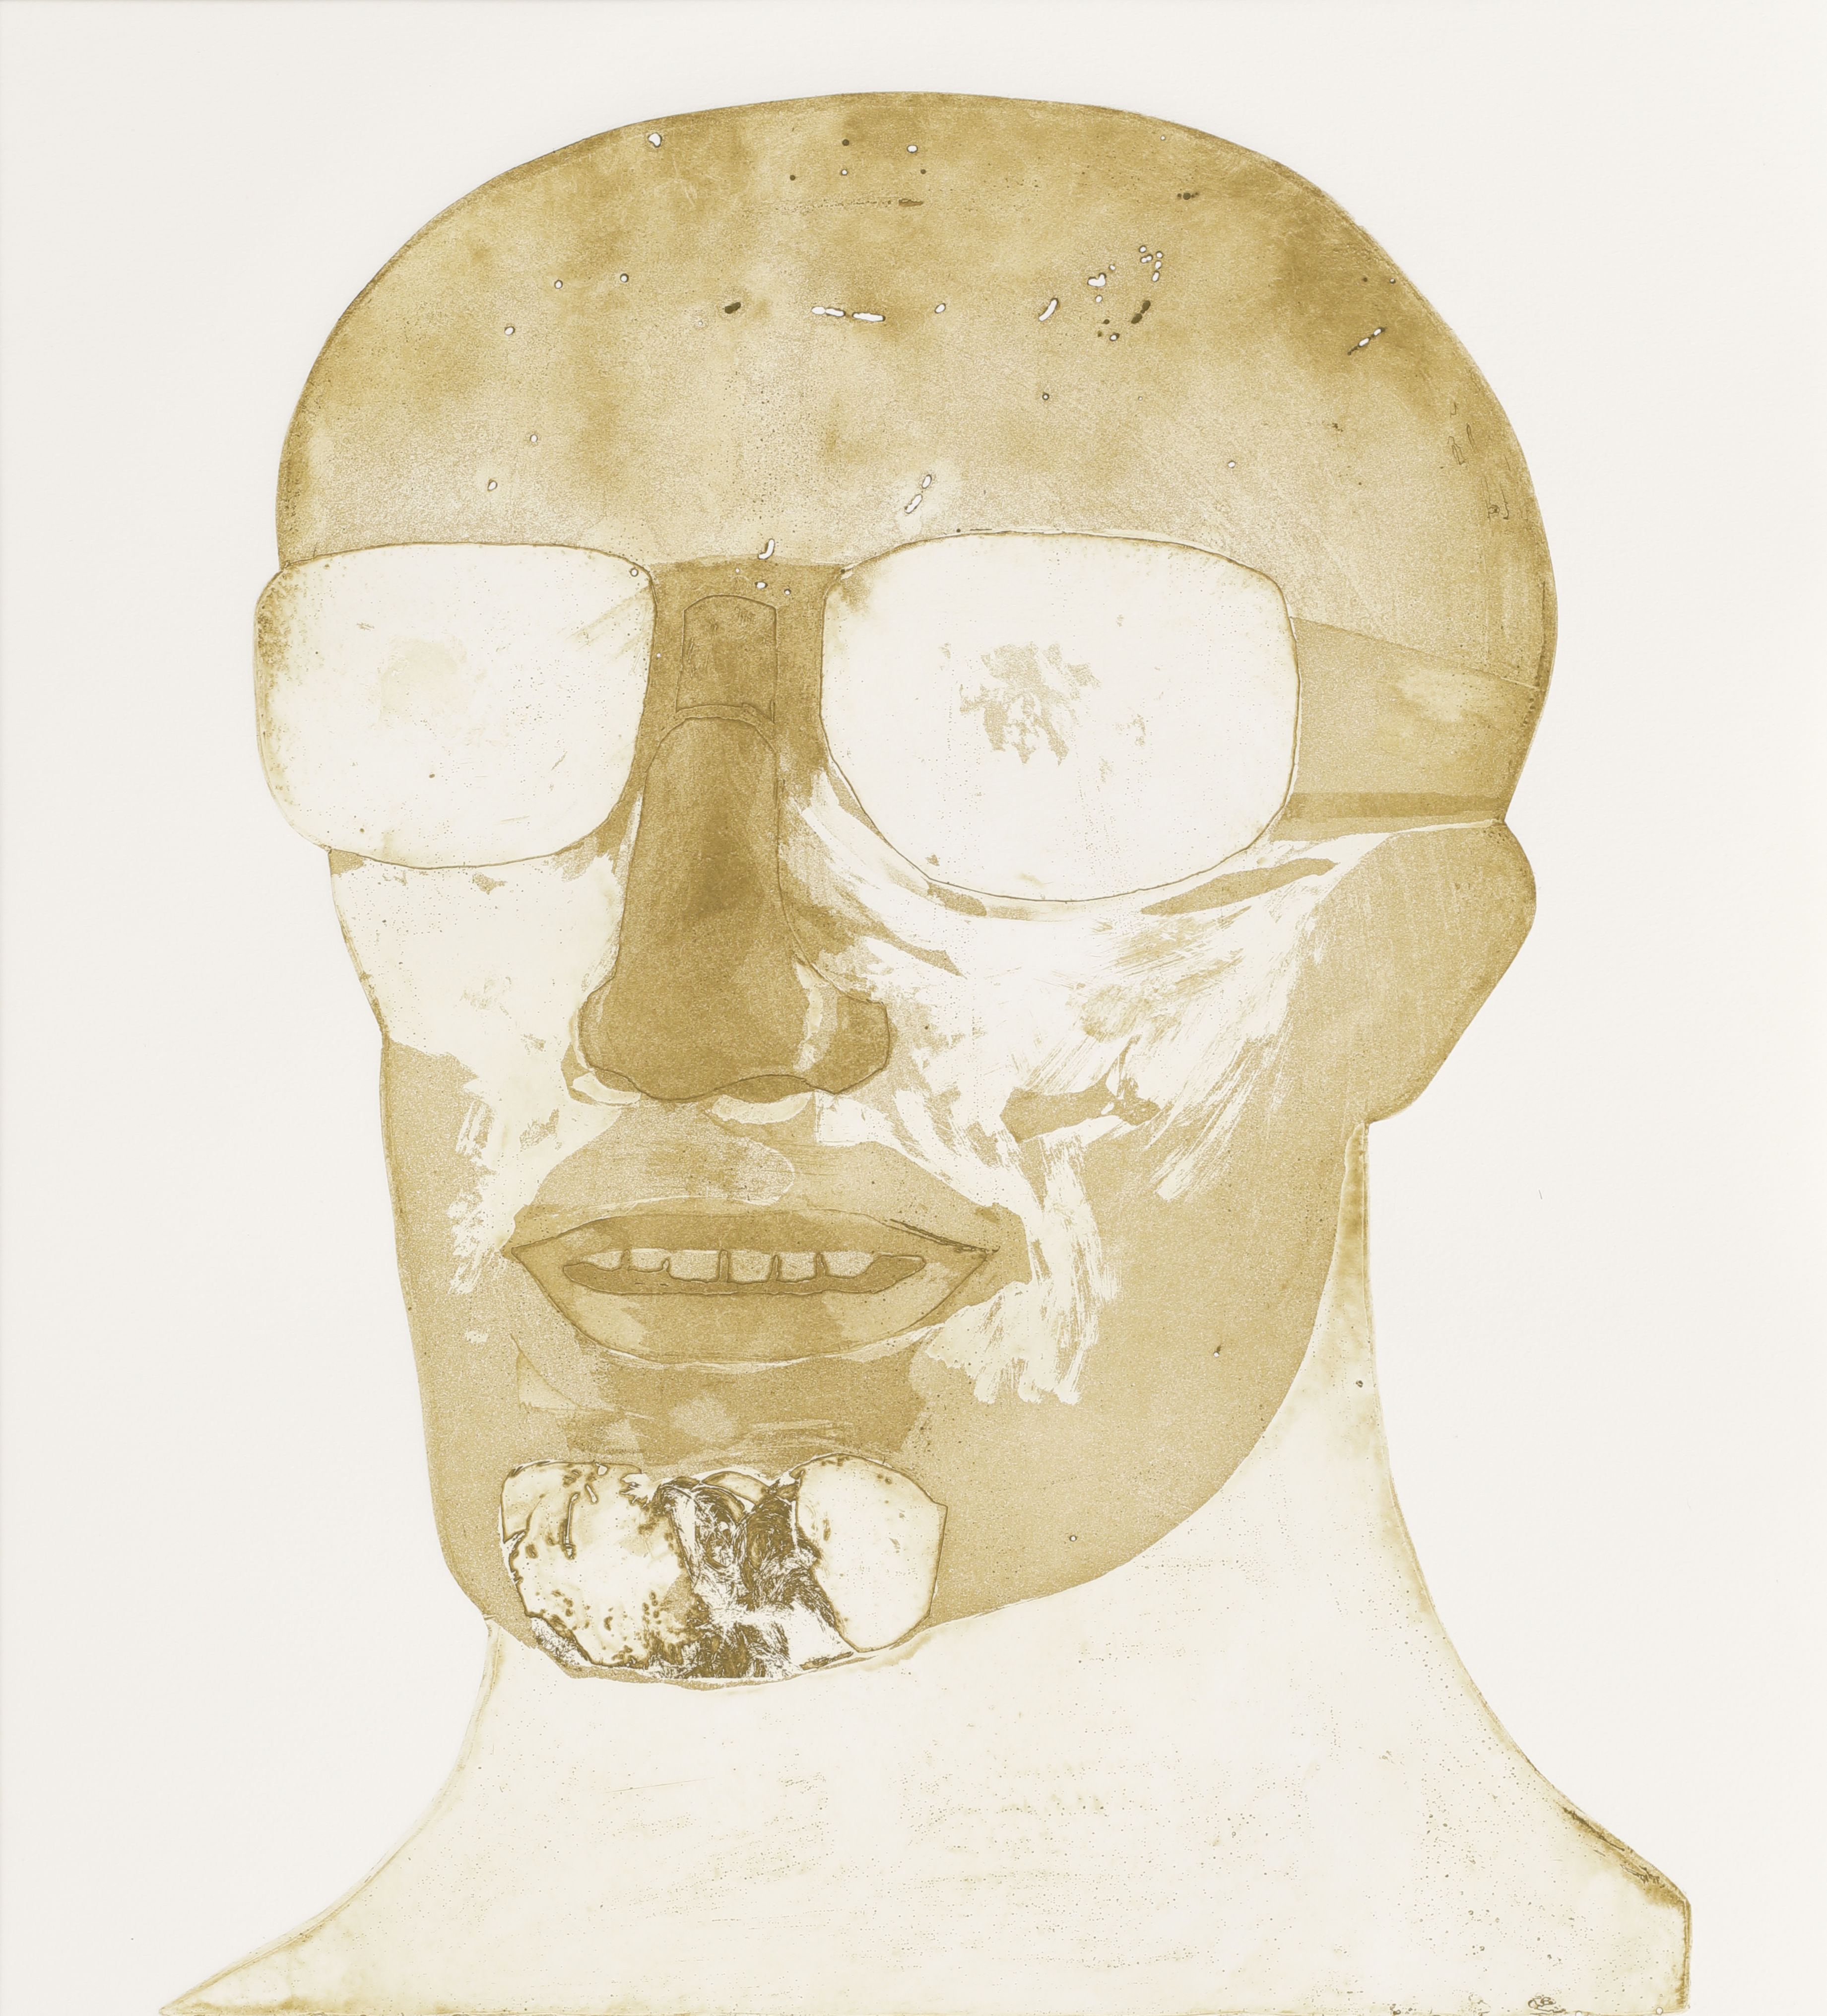 Elisabeth Frink. Goggled Head. 1973. Etching and aquatint on paper, 6/52.